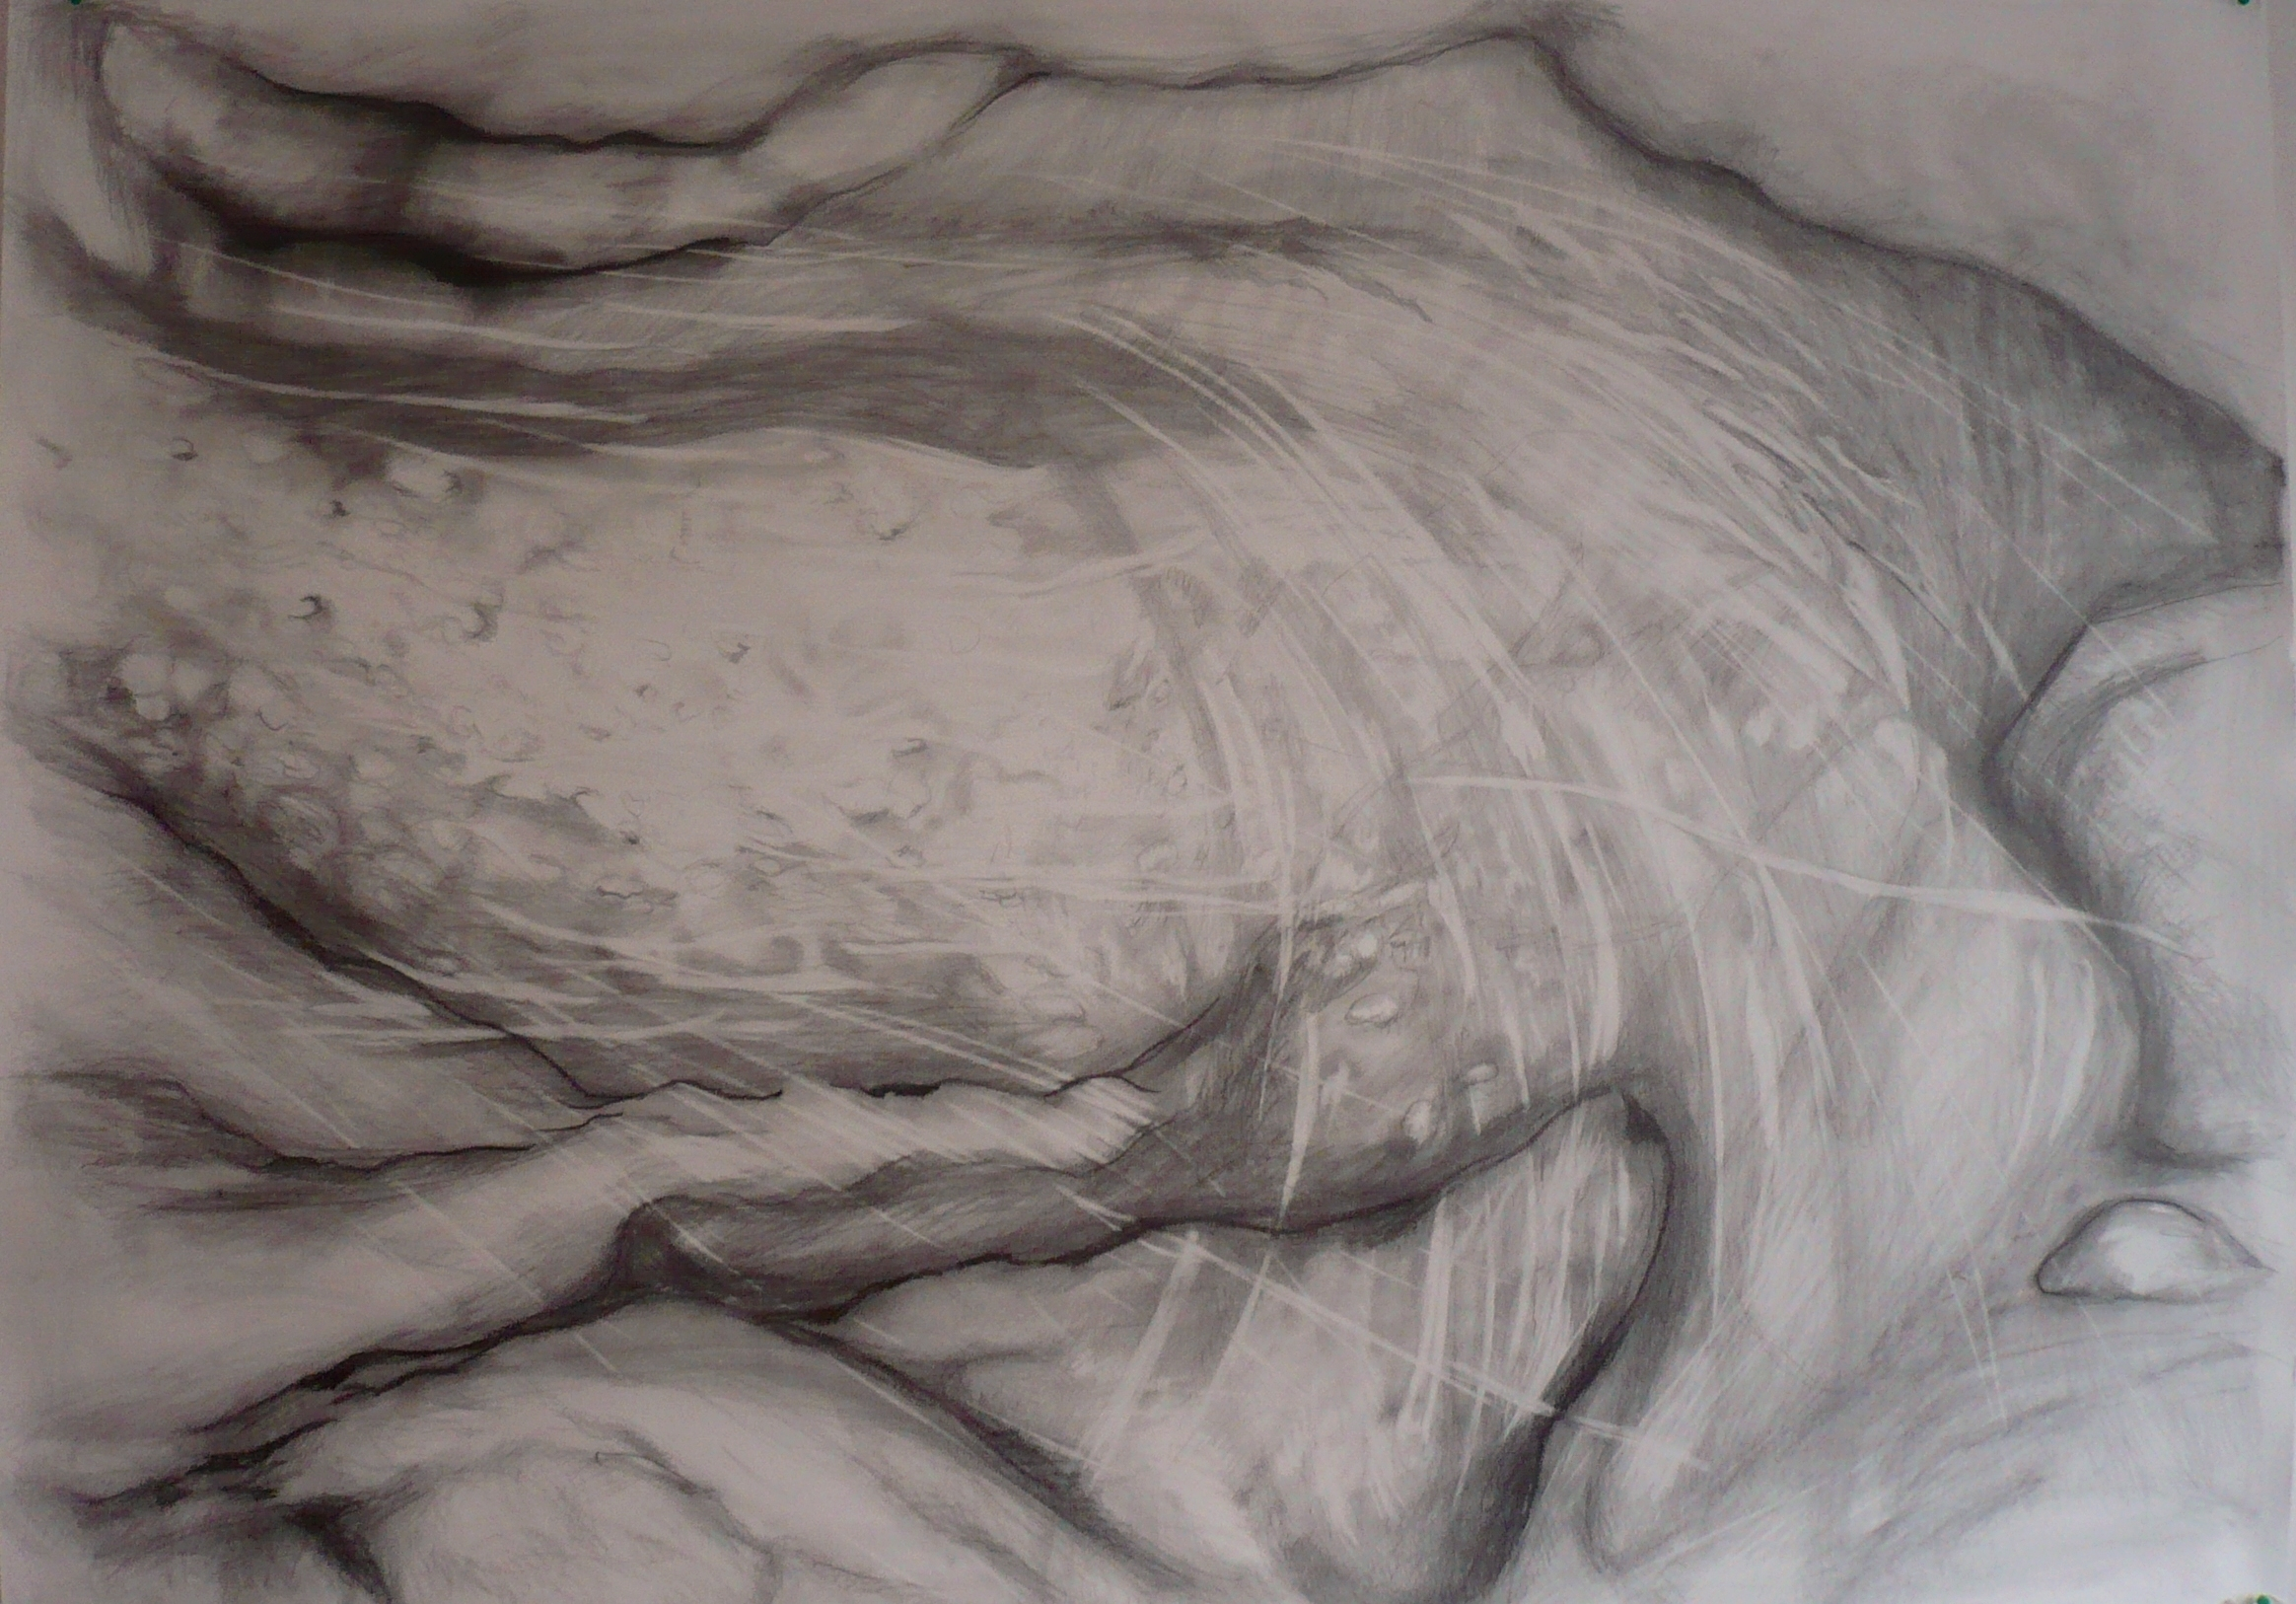 Carita Savolainen, Airscape on Water (Orb), 110cm x 150cm, pencil and charcoal on paper, veil, 2012